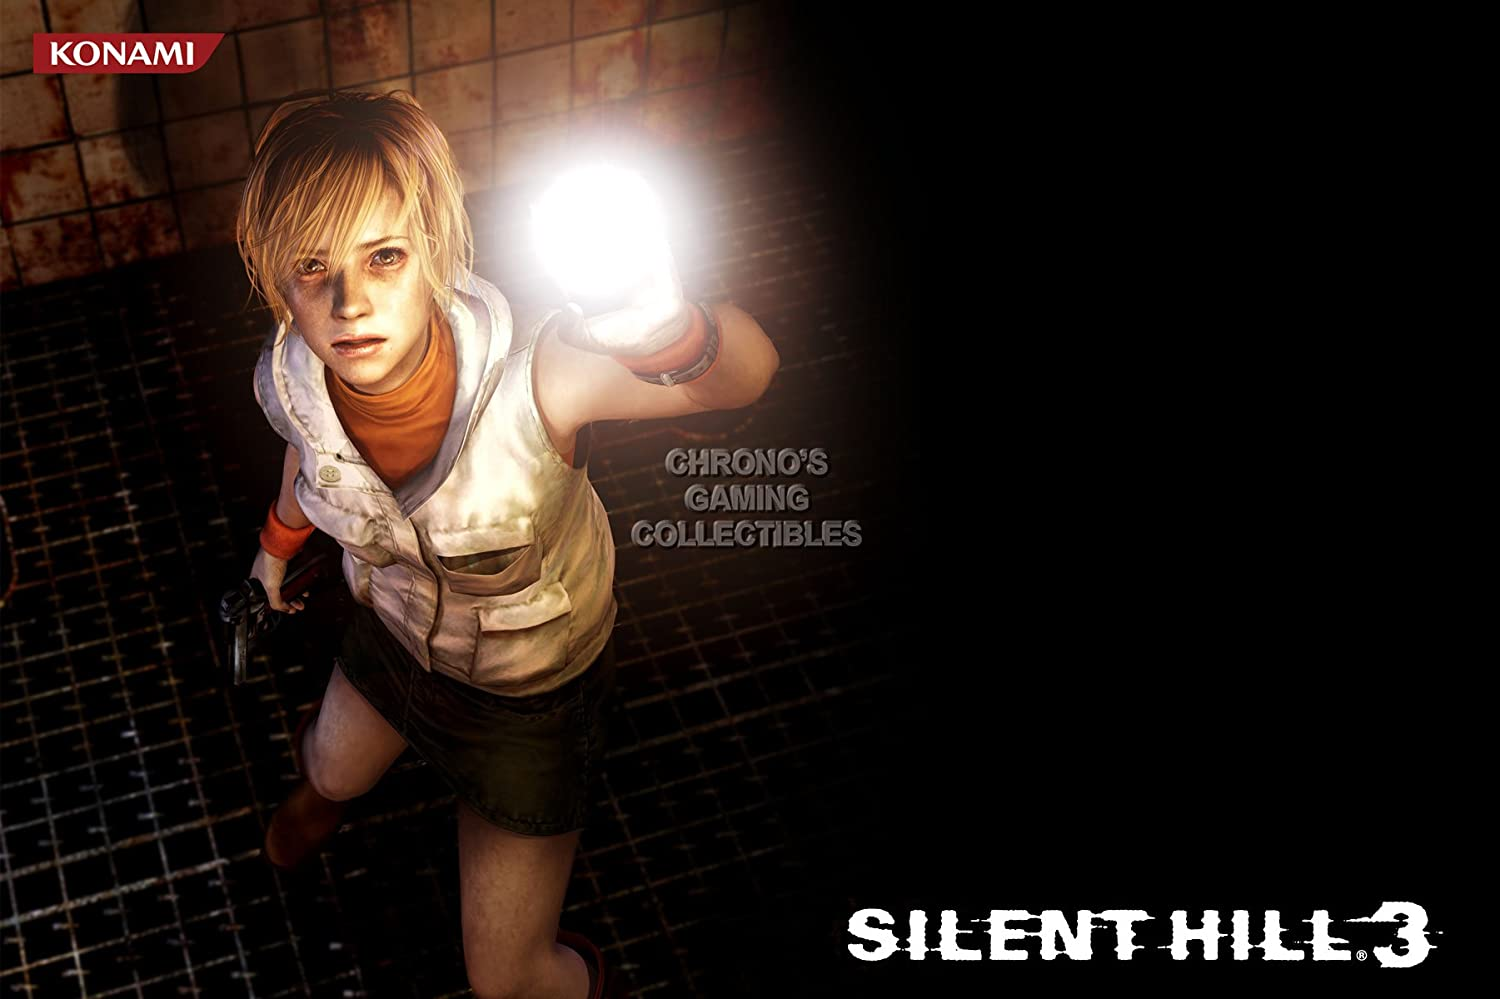 Amazon Com Primeposter Silent Hill 3 Poster Glossy Finish Made In Usa Oth232 24 X 36 61cm X 91 5cm Posters Prints